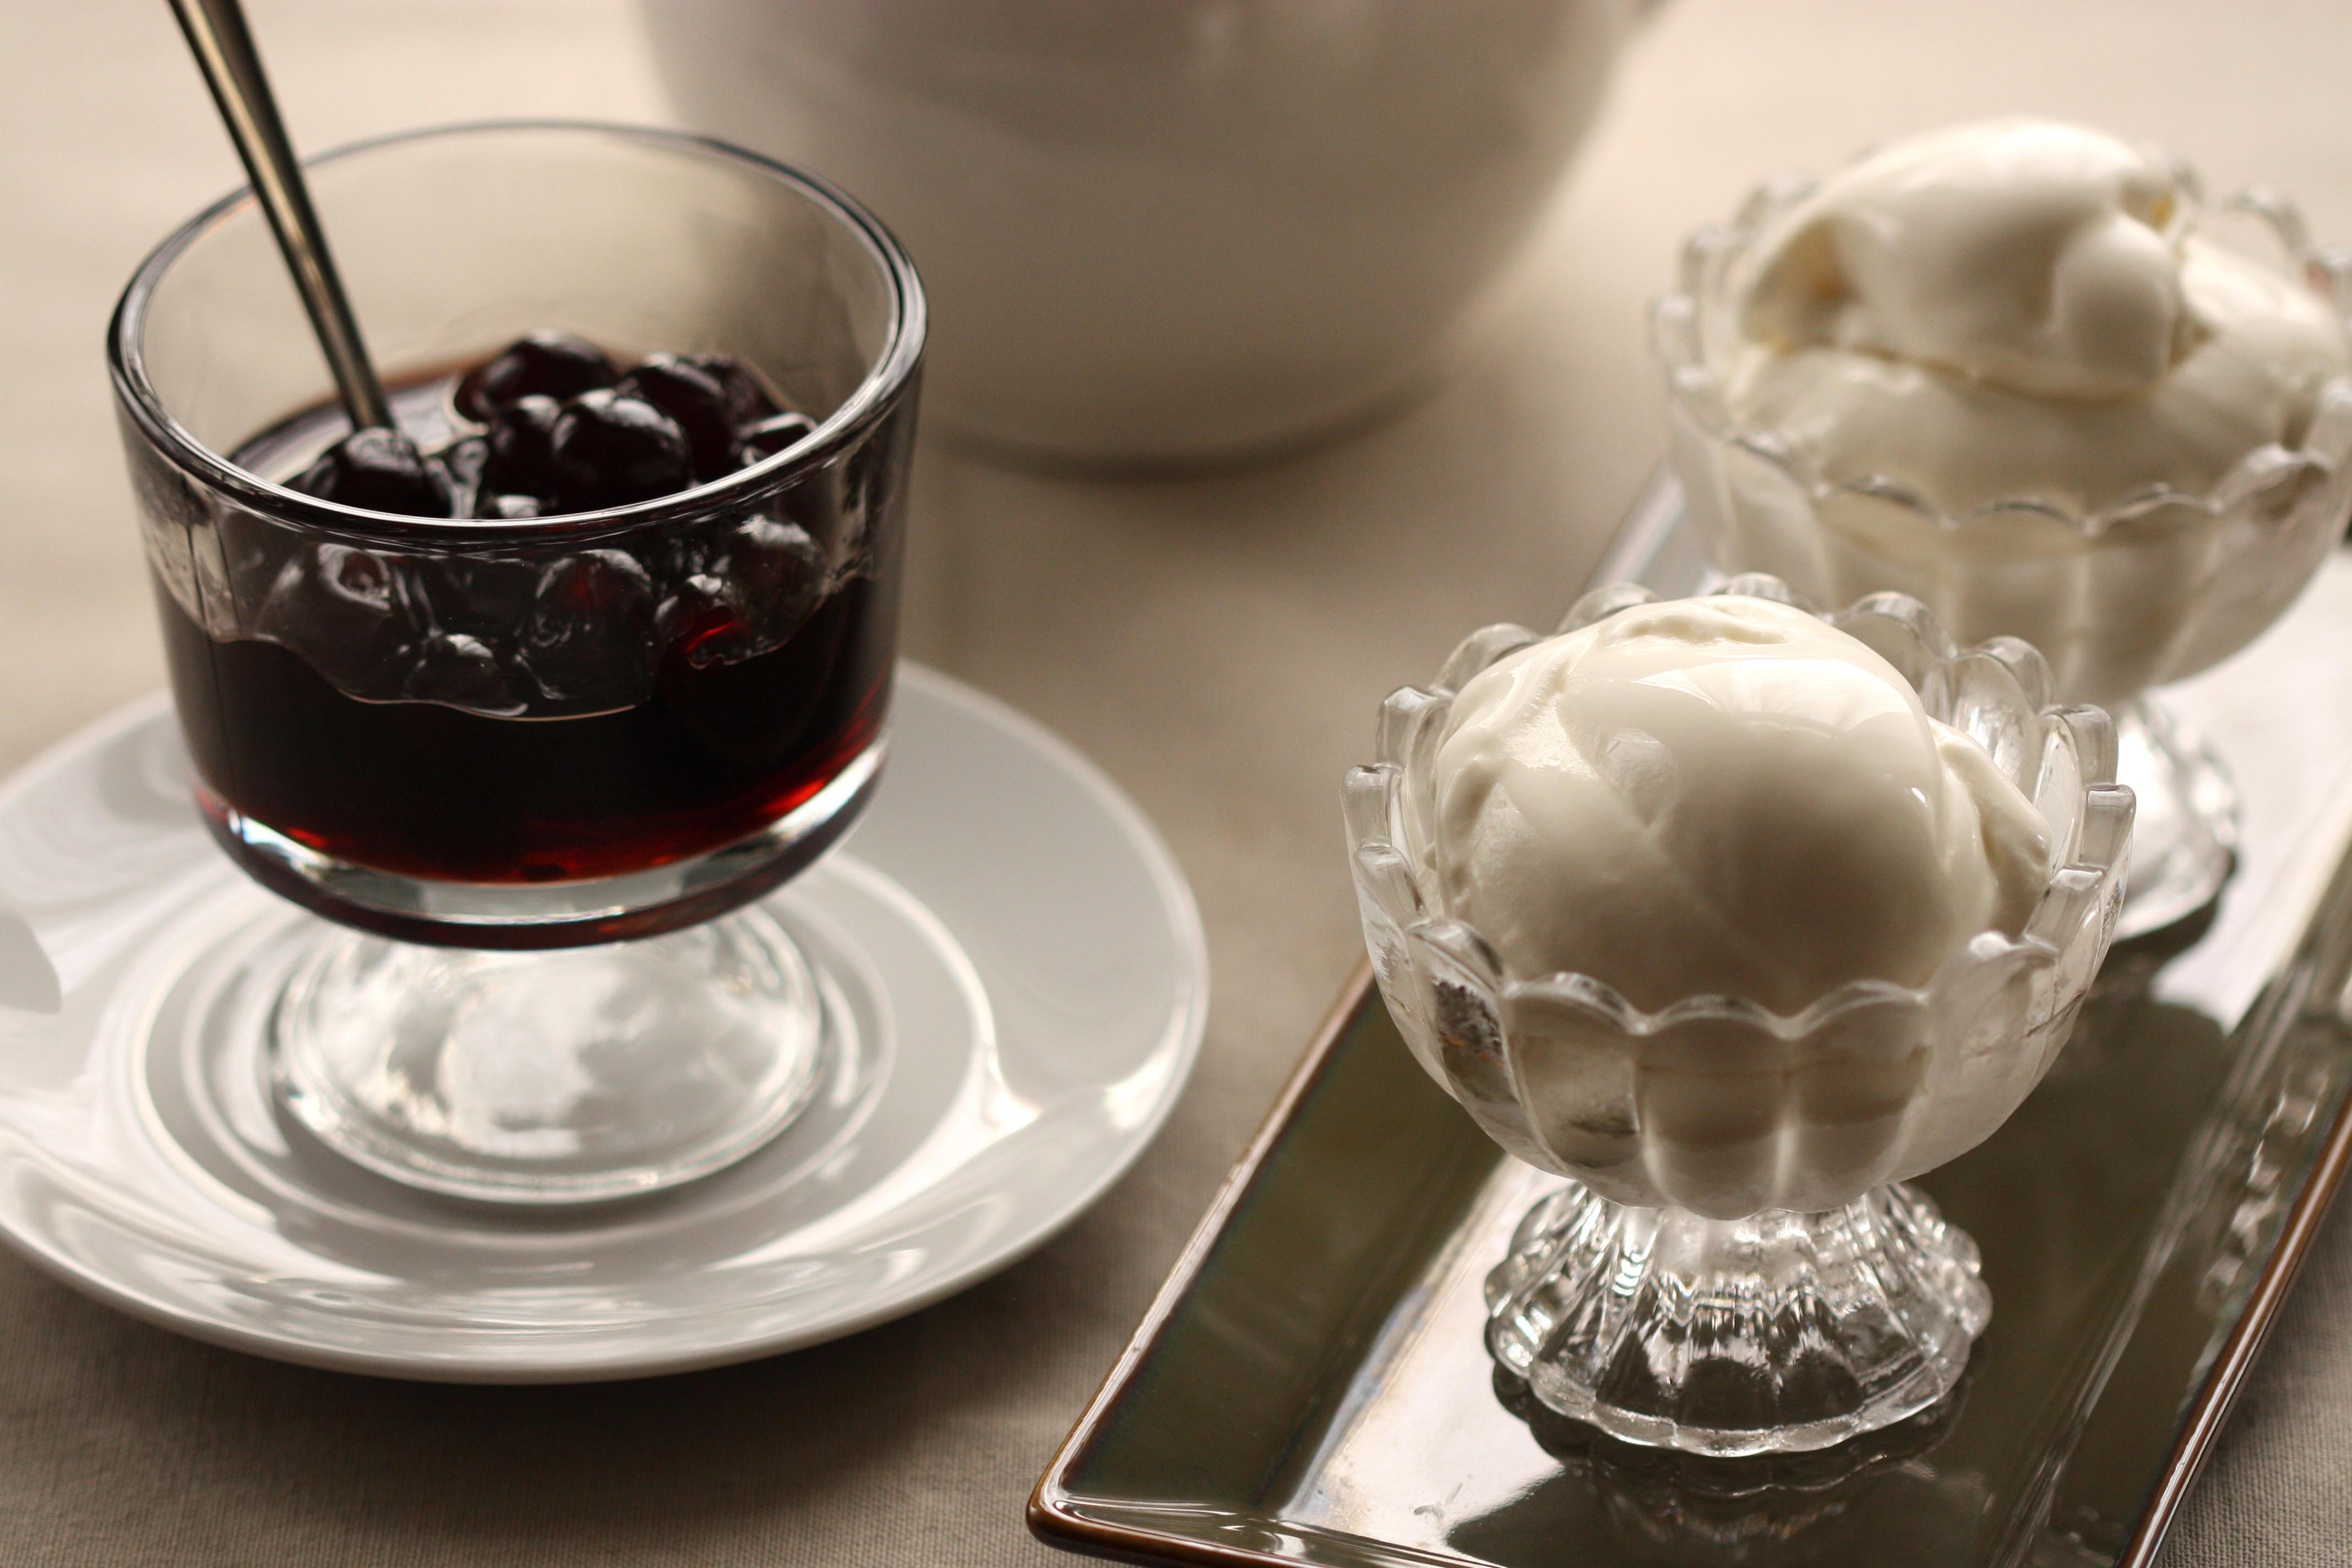 Fior di Latte gelato with amarene cherries